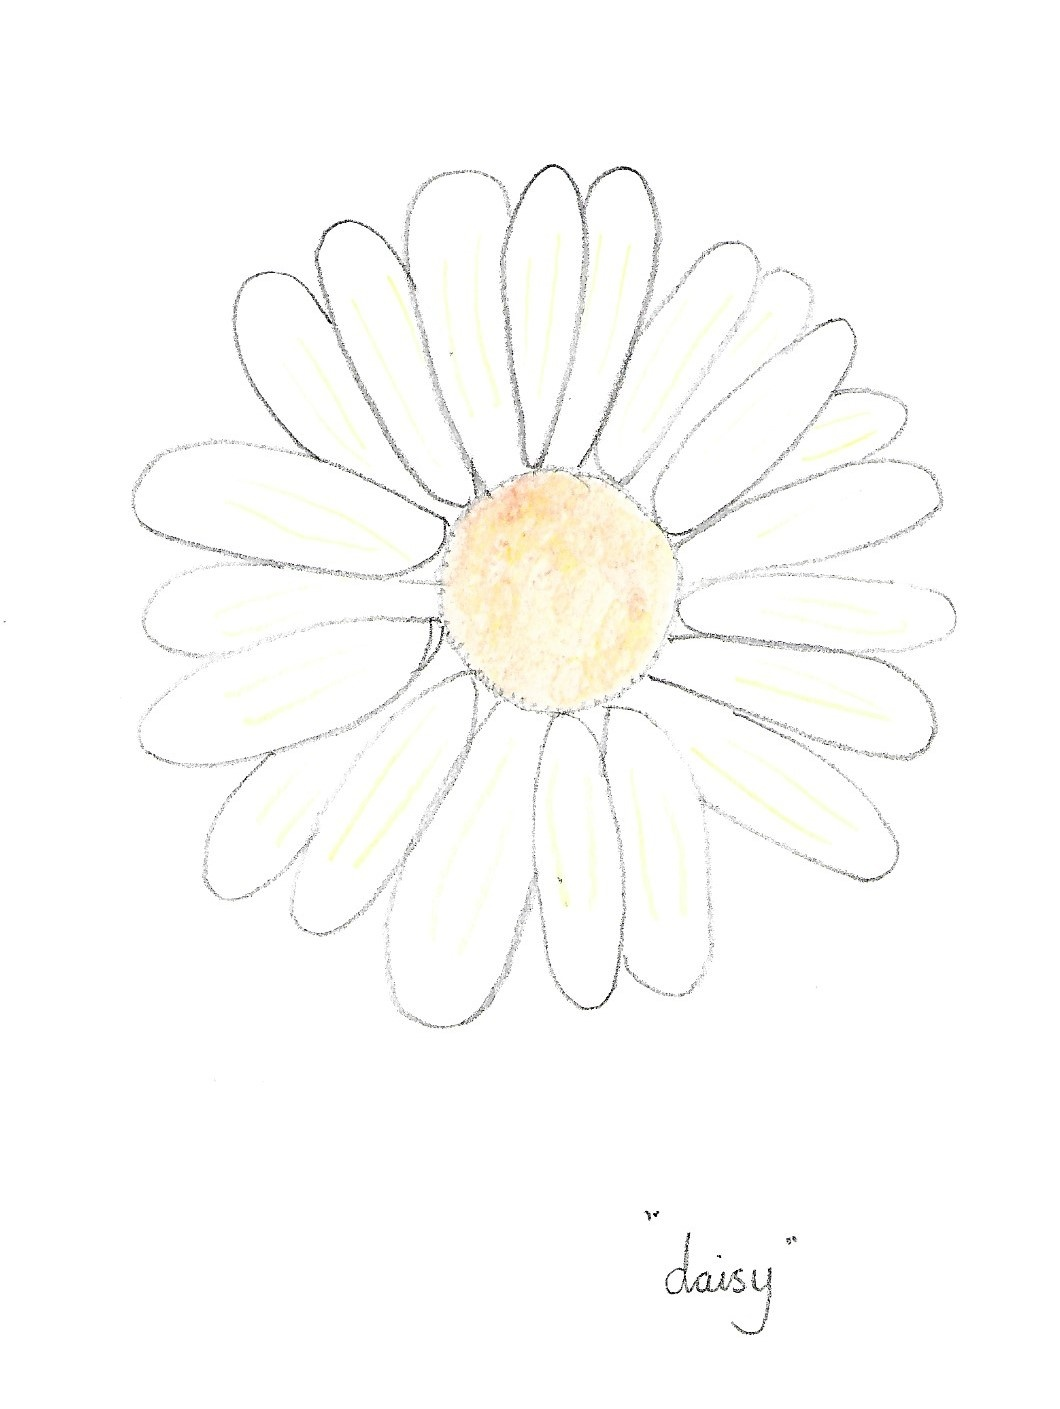 On My Own Daisy image